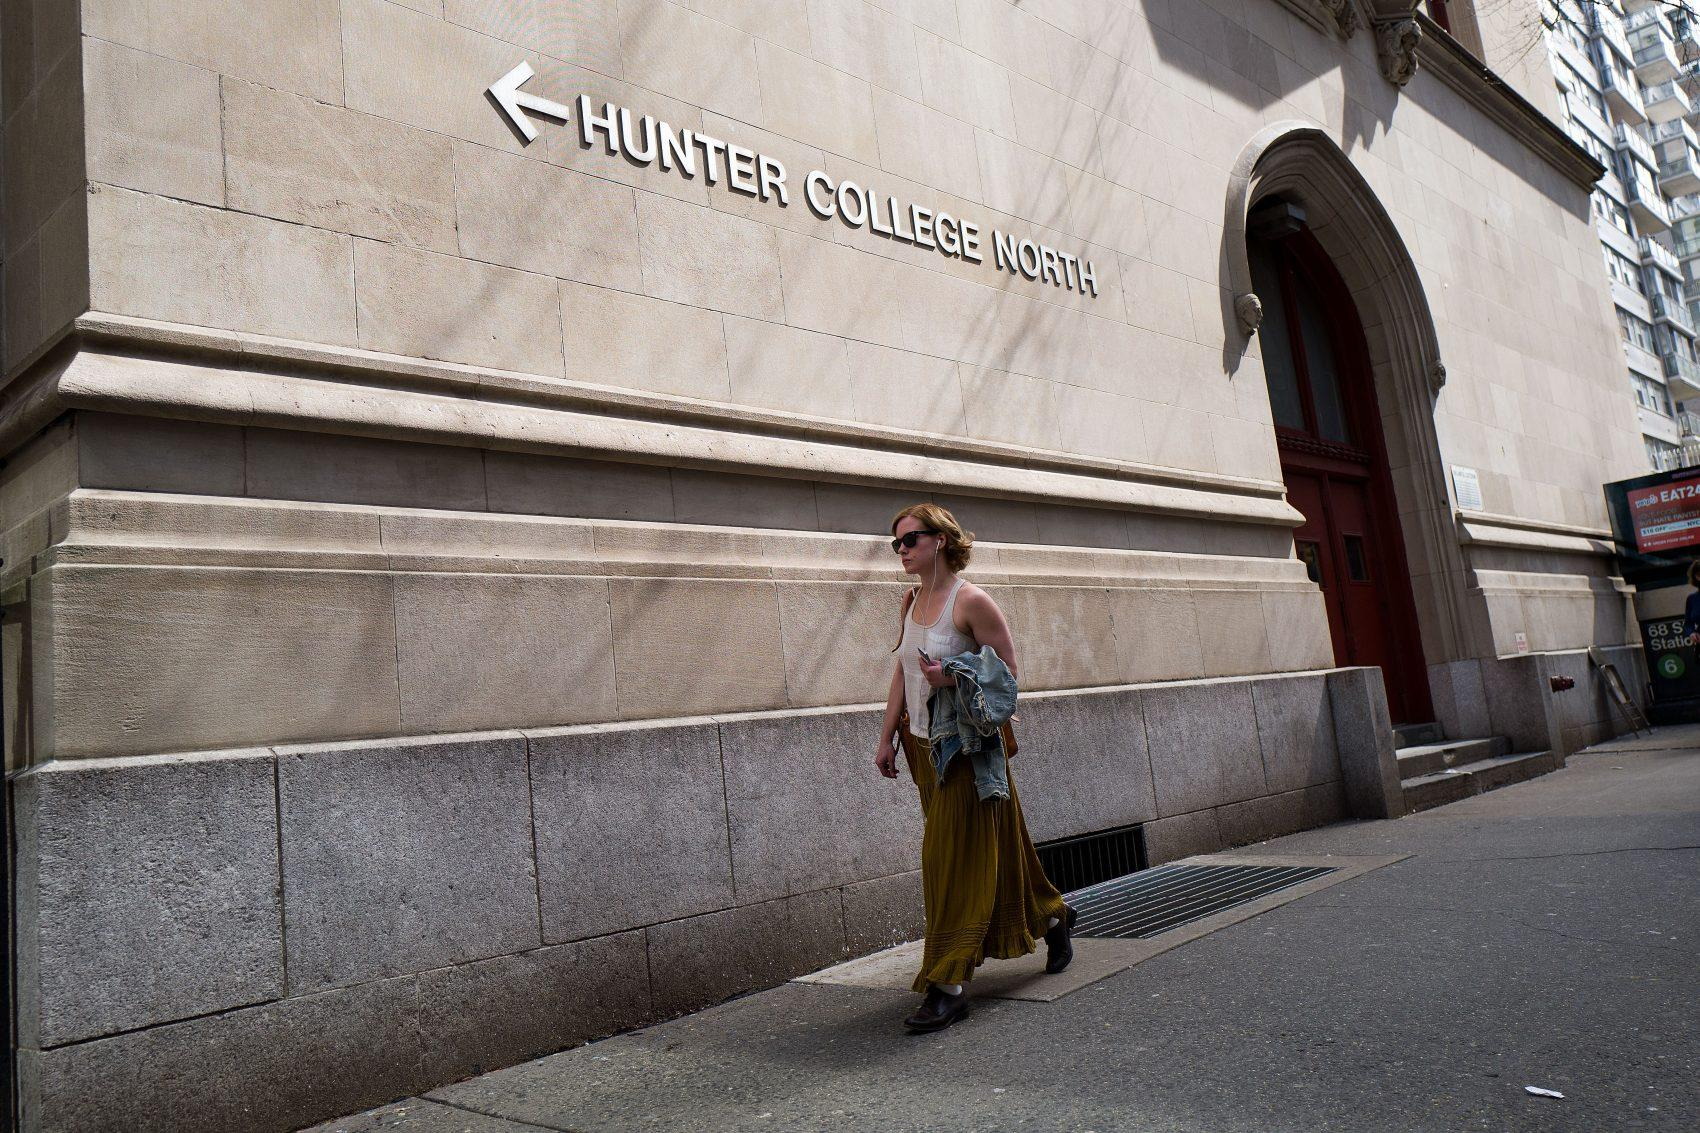 New York's Free Tuition For Some Students Gets Blowback